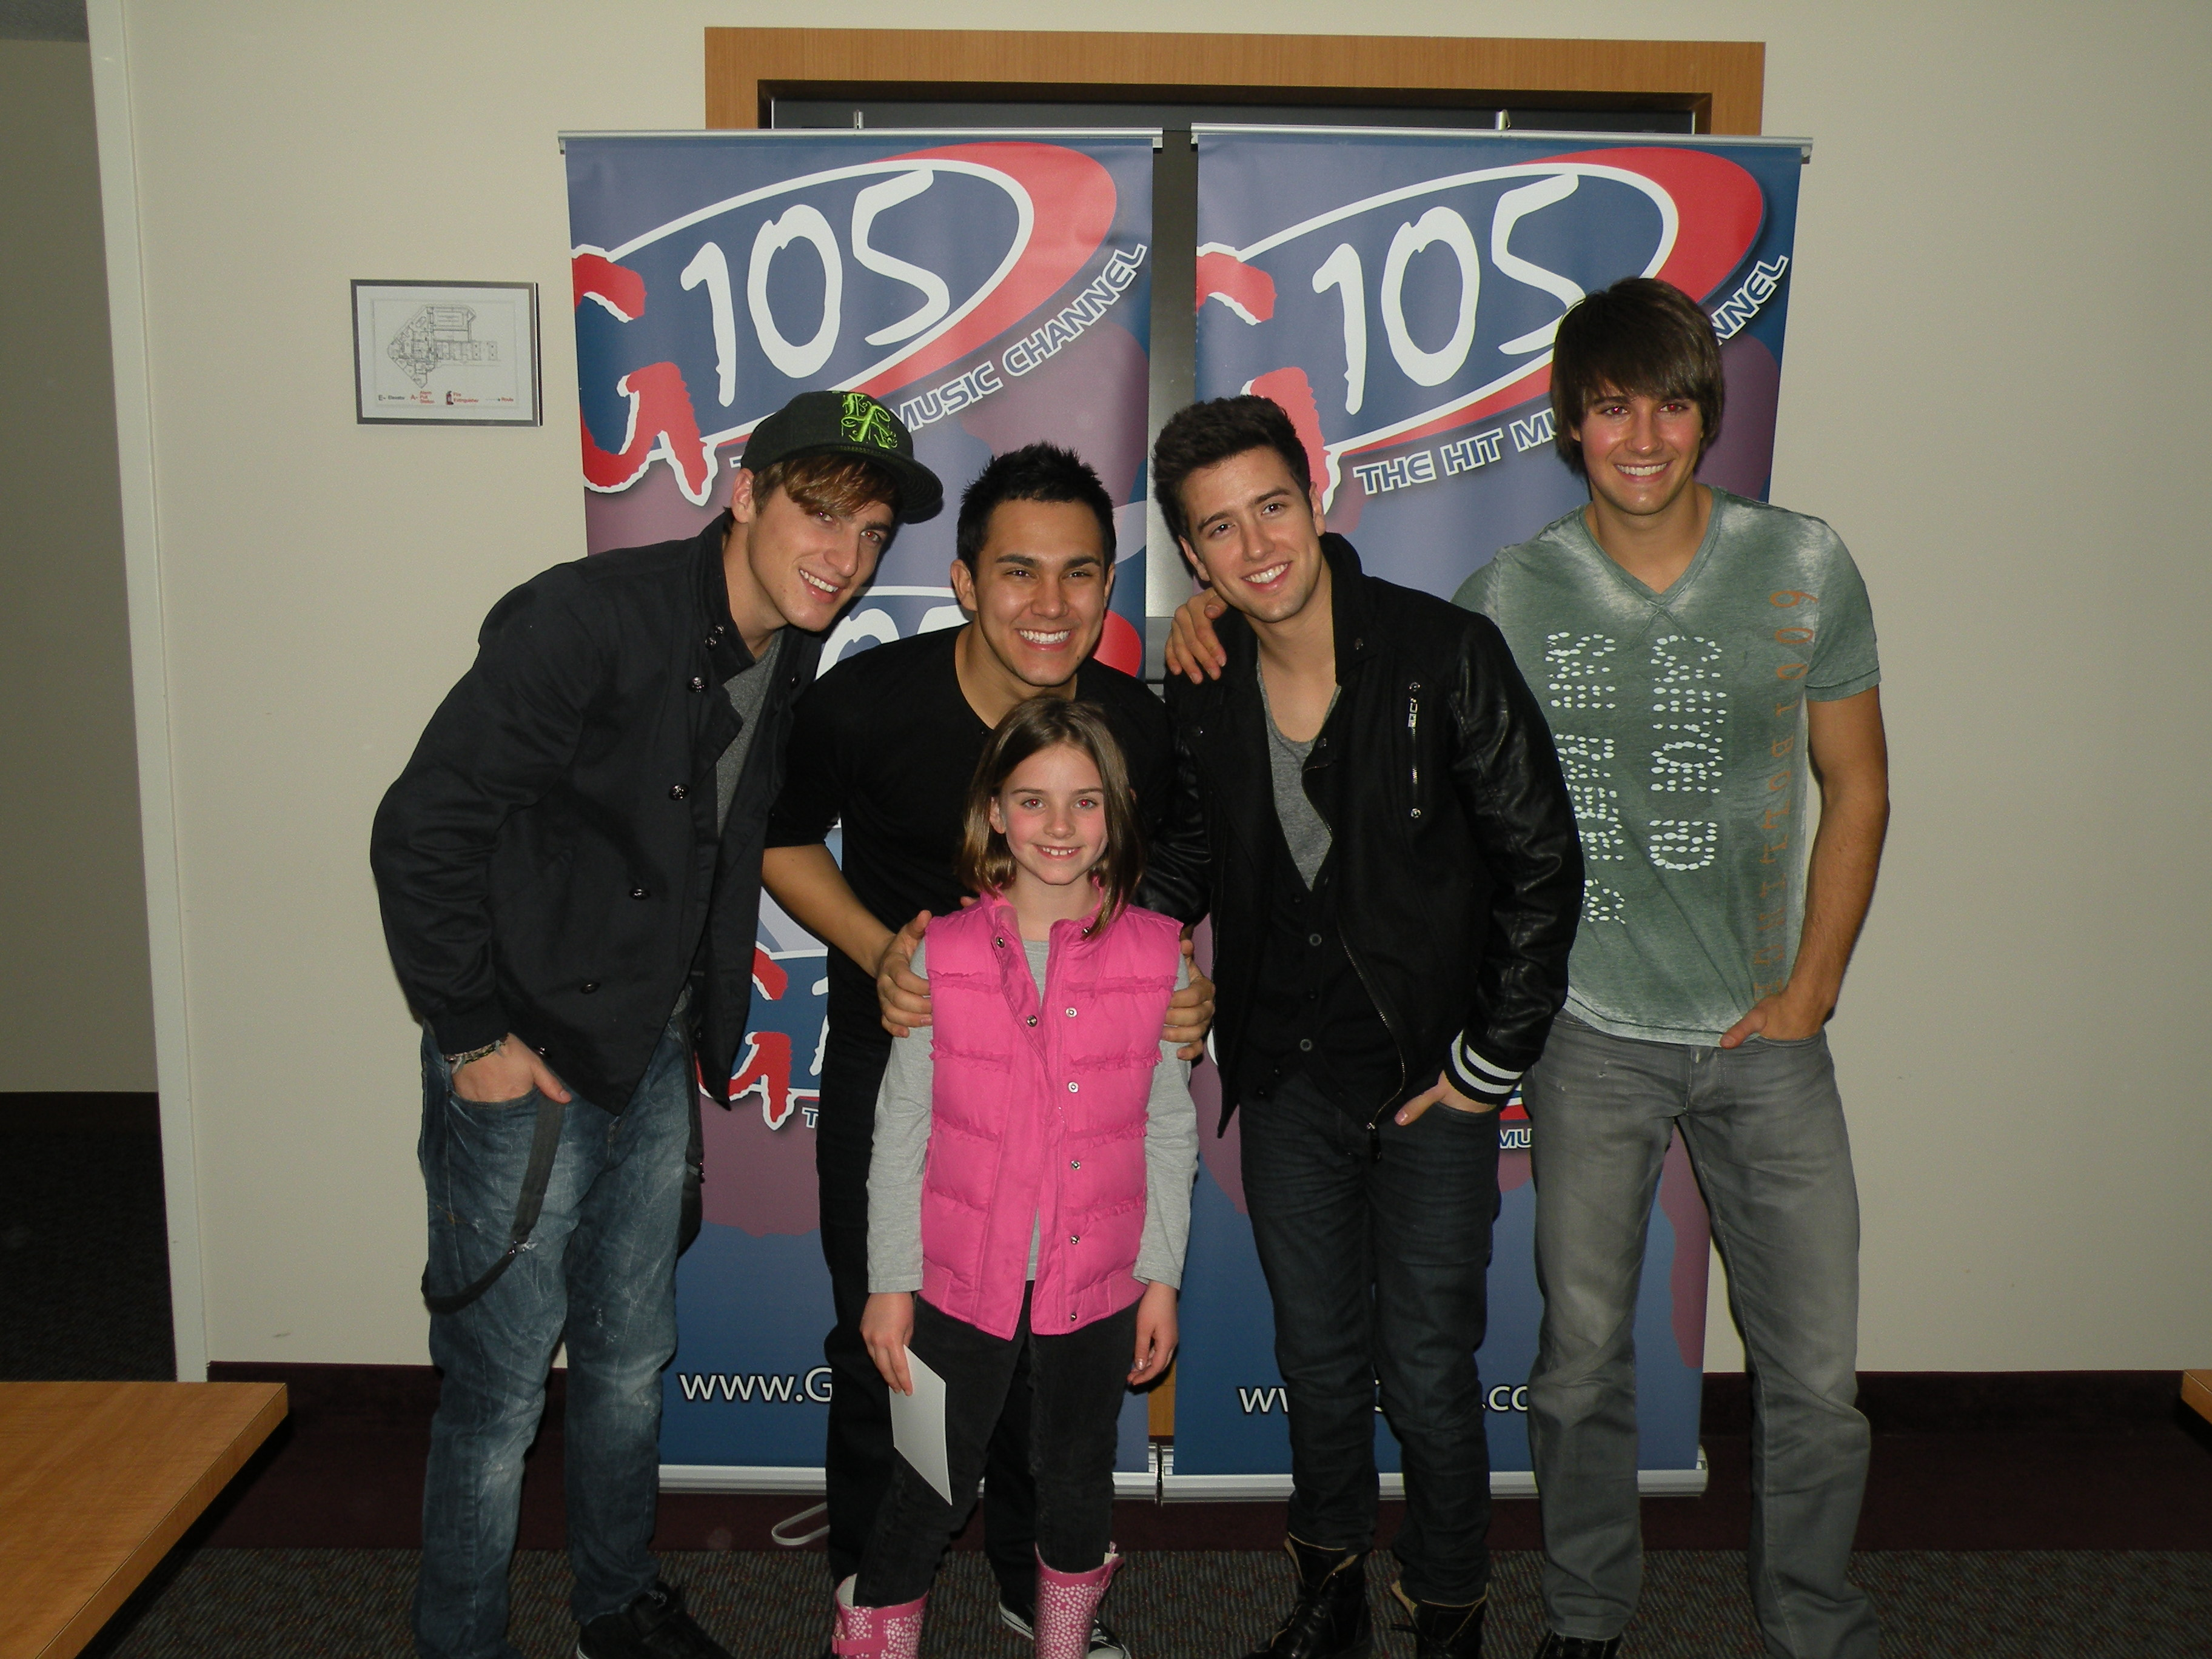 Big time rush the real full house michelle with big time rush m4hsunfo